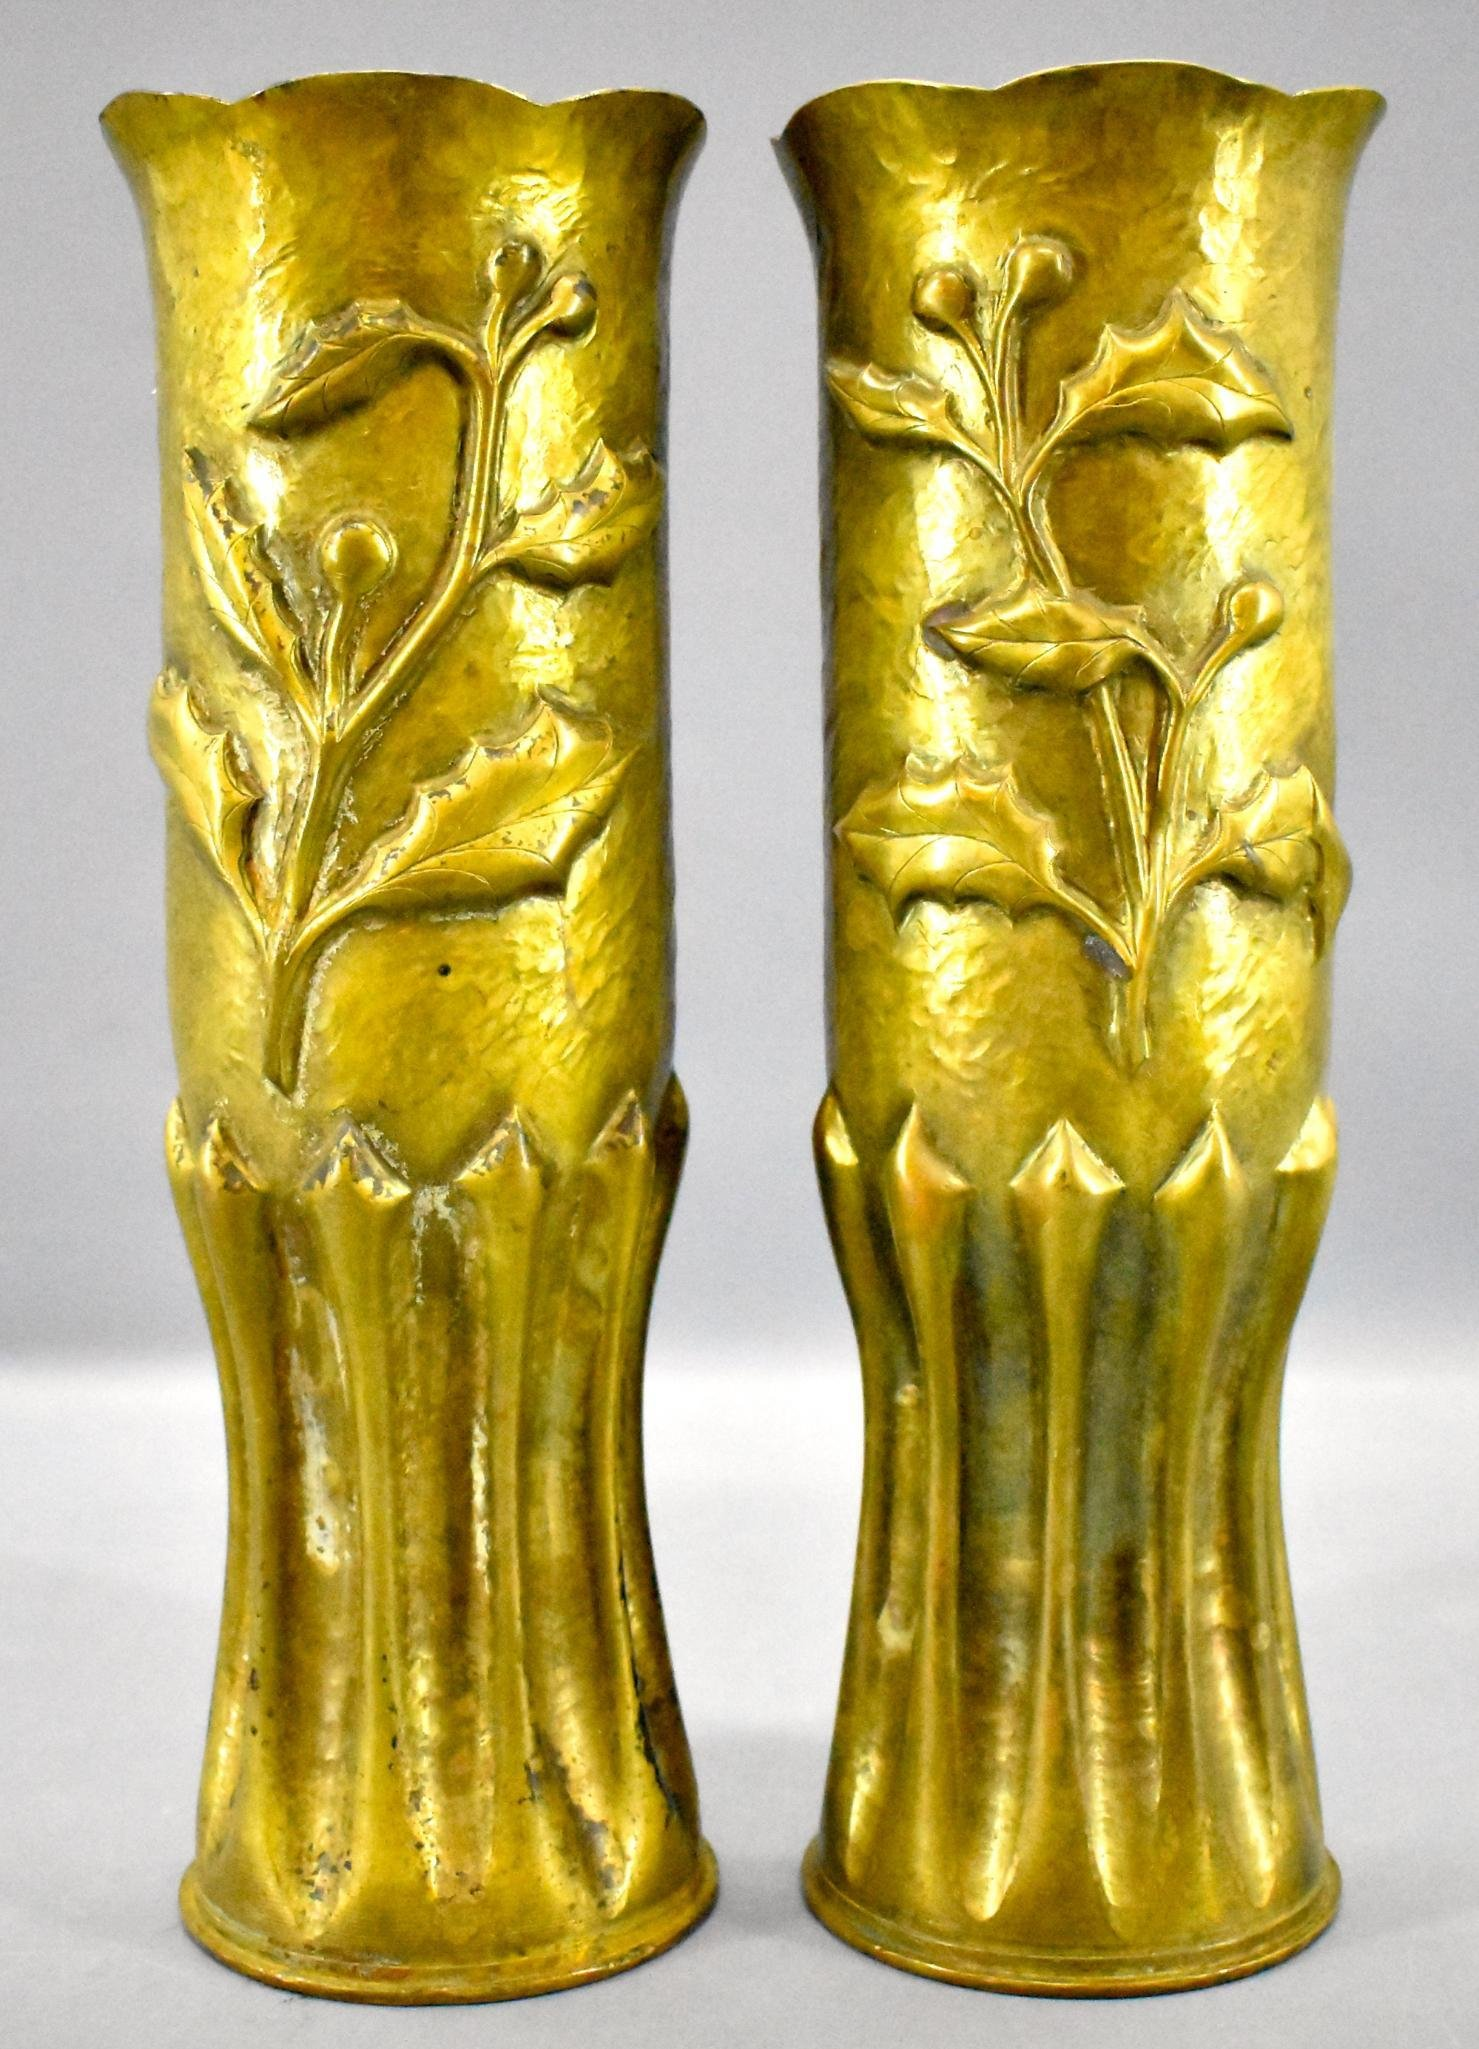 Pair of large WWI WWII trench art 75mm artillery shell